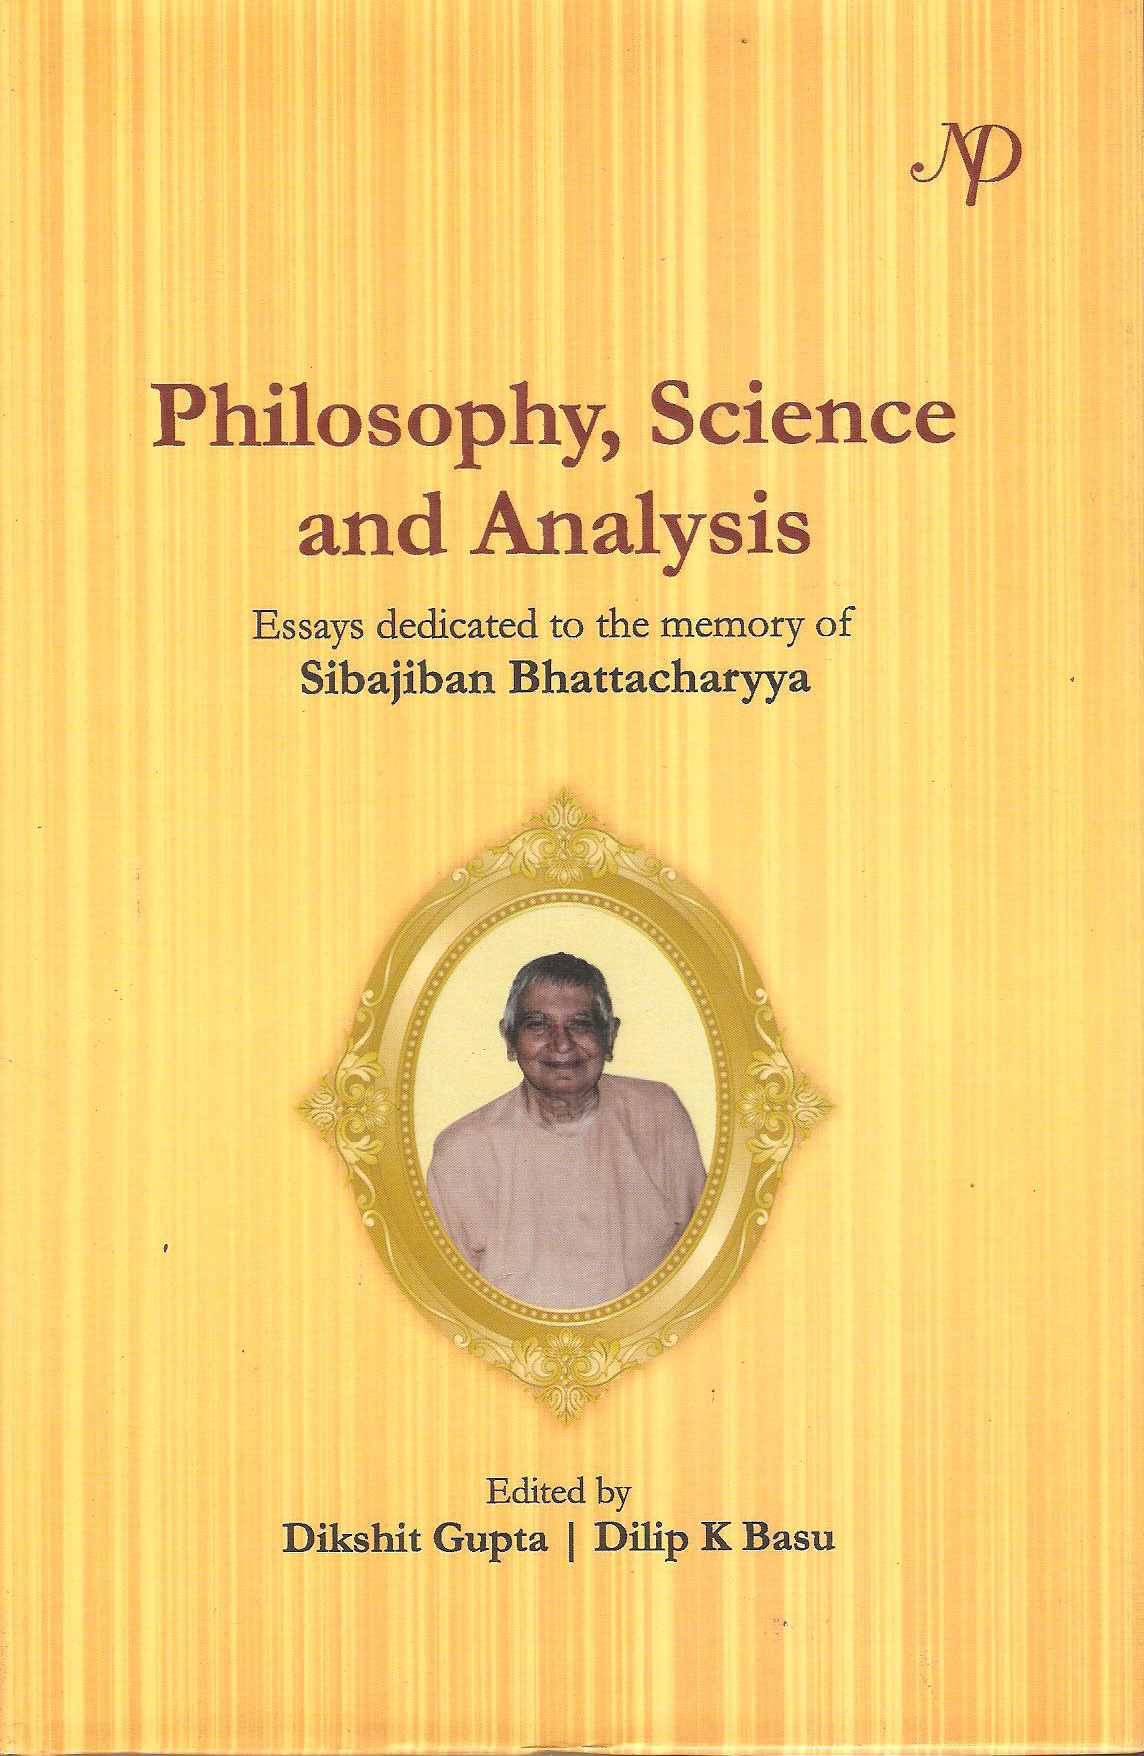 Philosophy, Science and Analysis